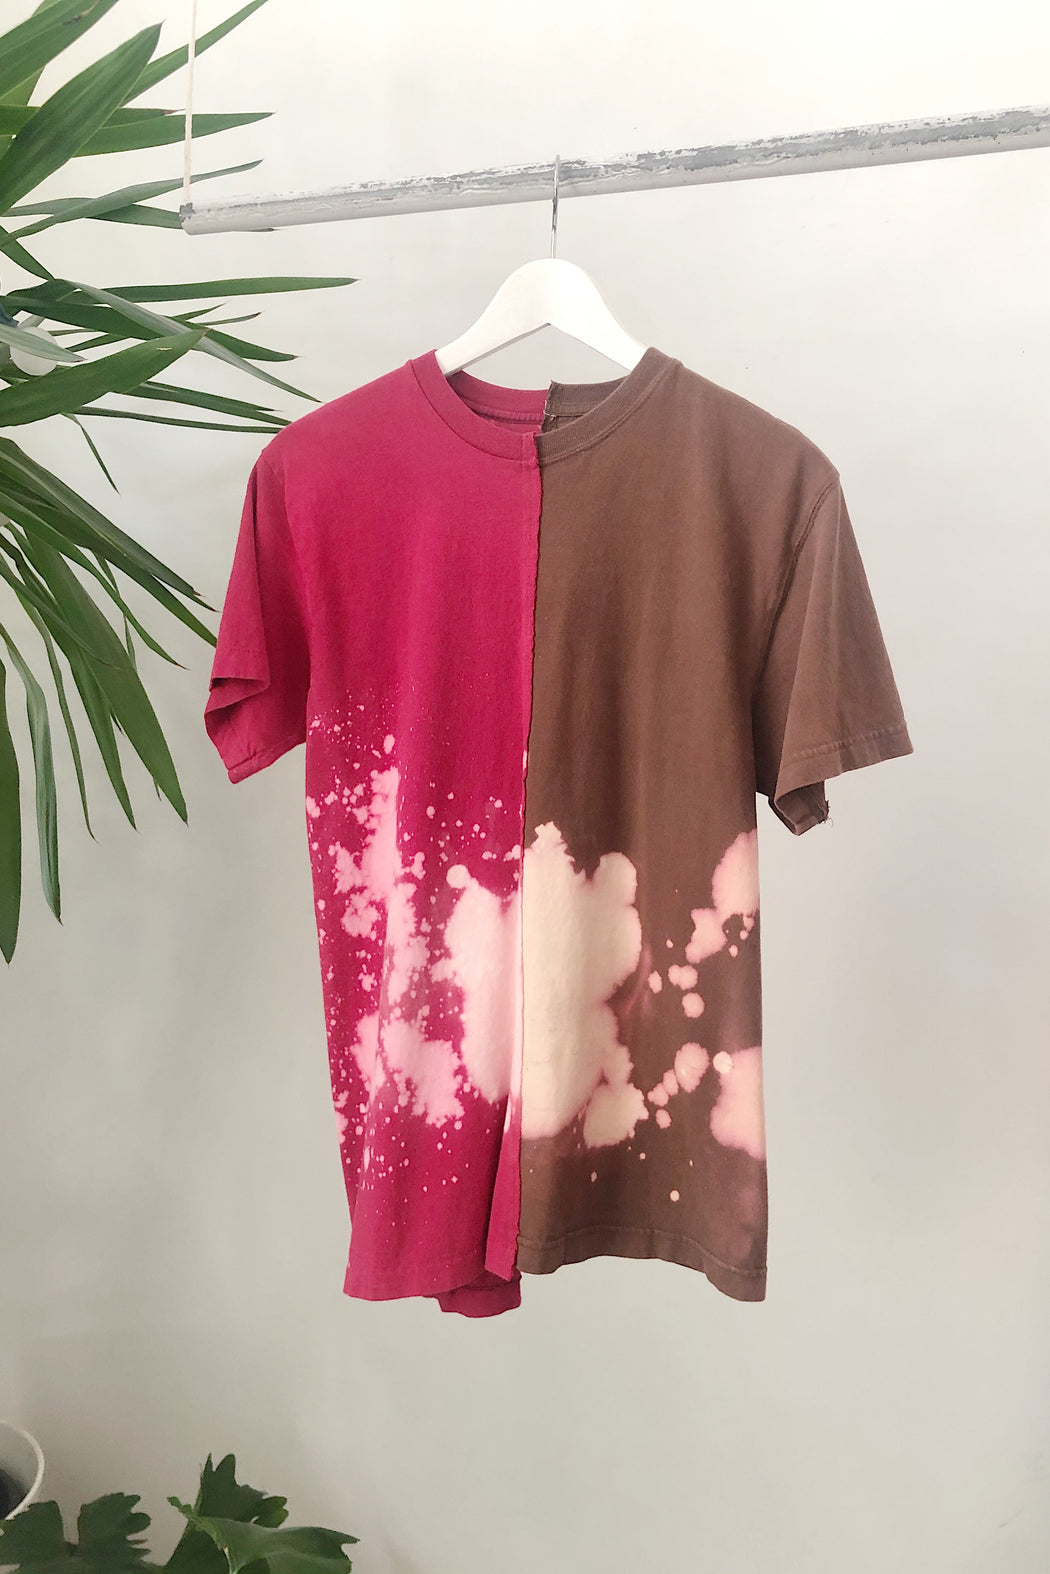 RE-WORKED 2-TONE DYE TEE | No. 2